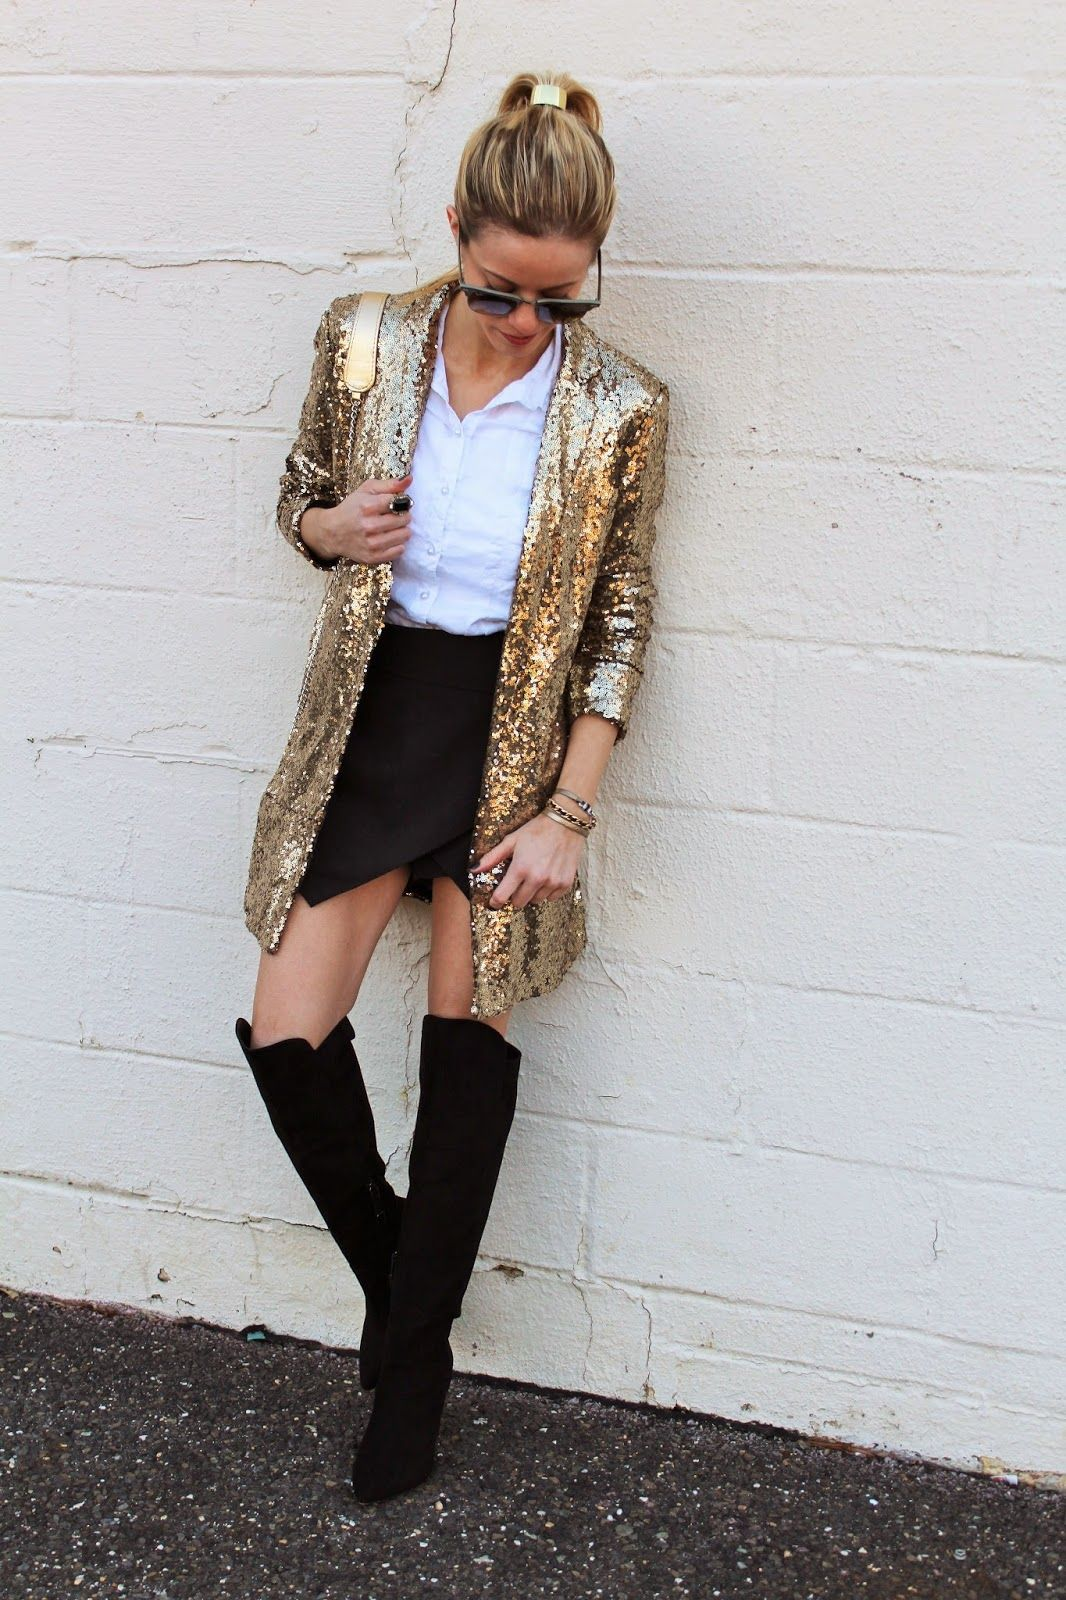 Kim of The Knotted Chain in the Name in Lights Sequin Blazer || Get the blazer: http://www.nastygal.com/clothes-outerwear-blazers/nasty-gal-name-in-lights-sequin-blazer?utm_source=pinterest&utm_medium=smm&utm_term=ngdib&utm_content=nasty_gals_do_it_better&utm_campaign=pinterest_nastygal